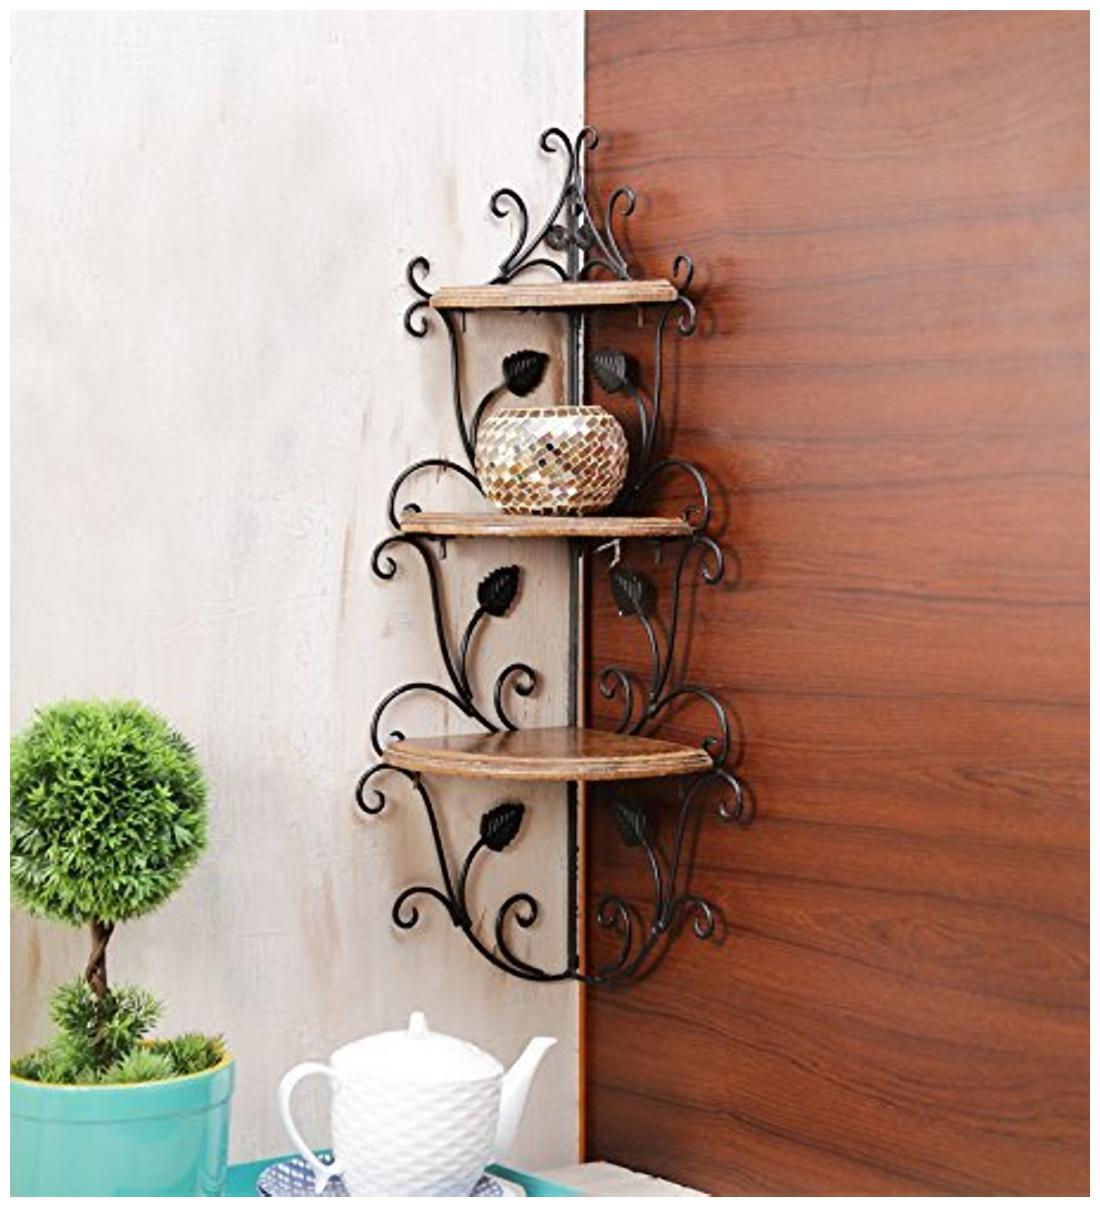 Worthy Shoppee Wall Mounted Wooden Corner Rack Home Decor Carved Furniture Shelves...